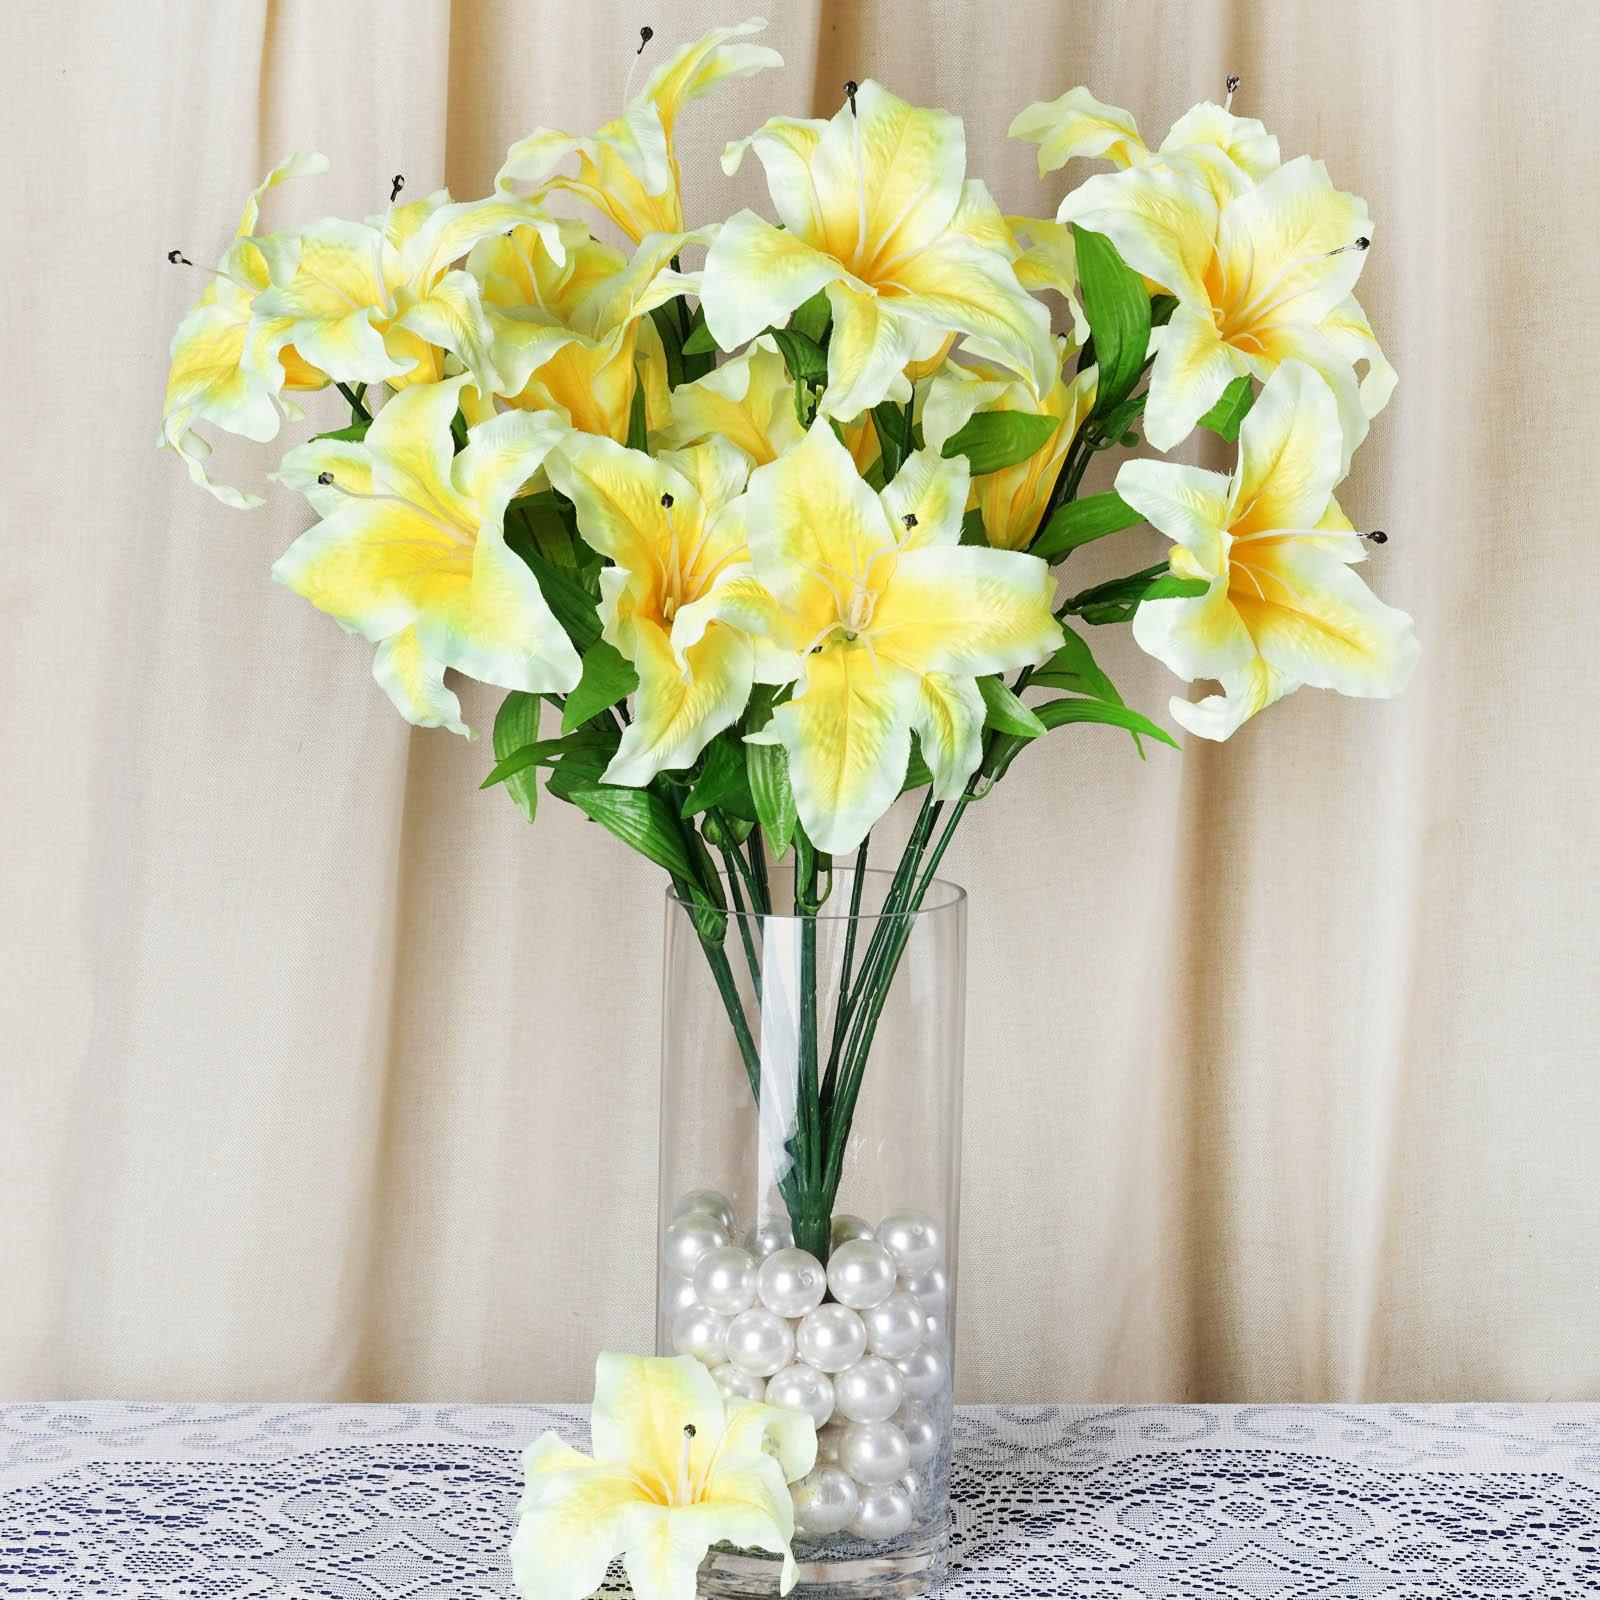 6 Bush 54 Pcs Yellow Artificial Casa Blanca Lily Flower Bridal